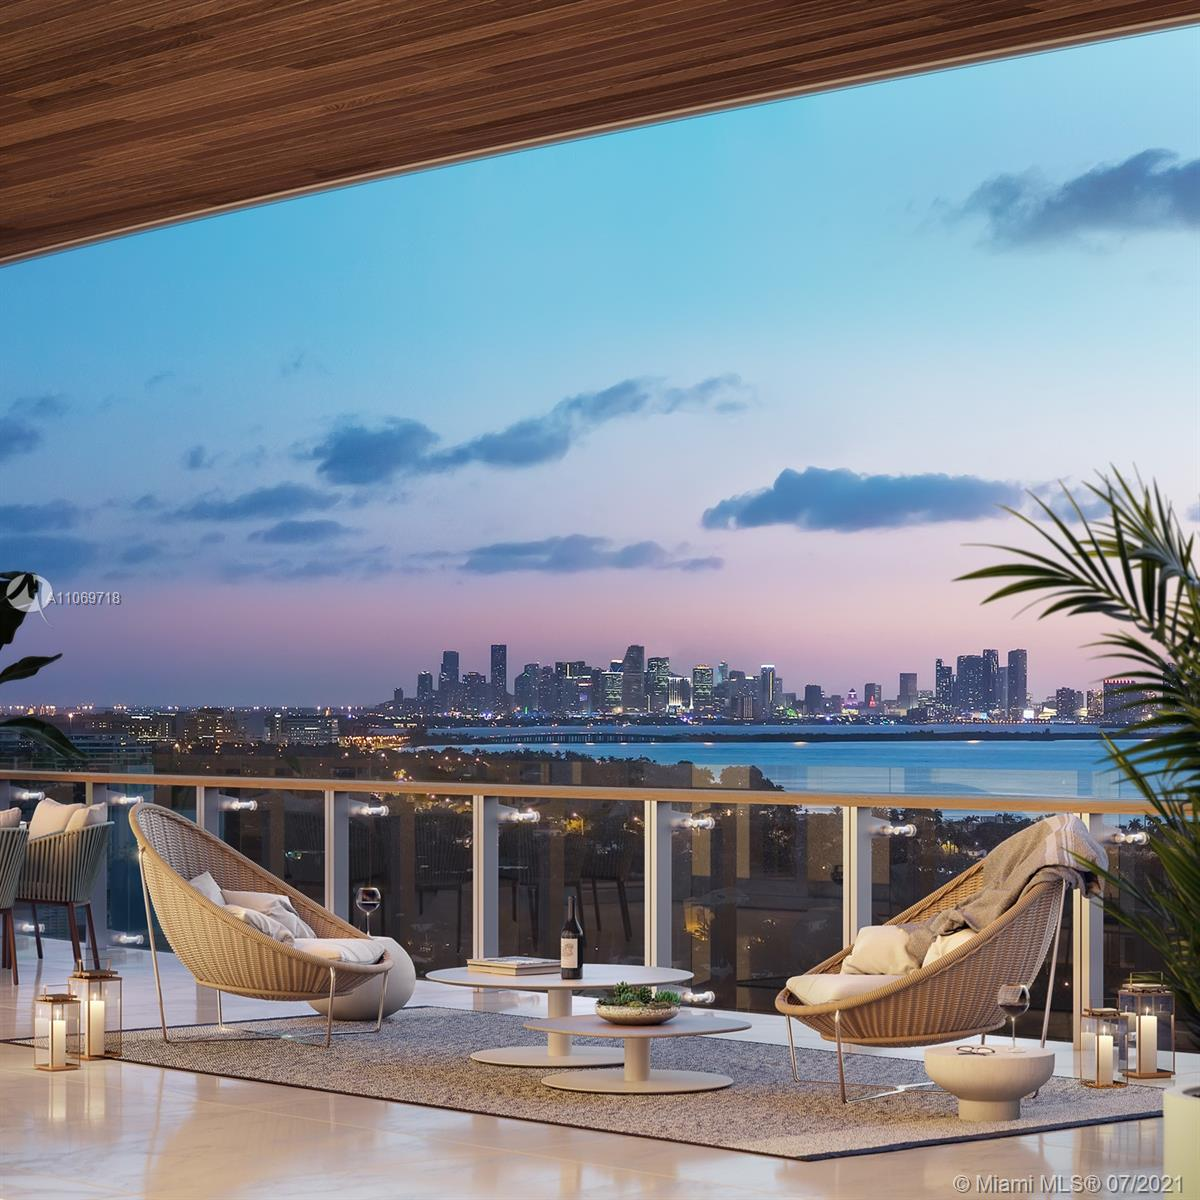 On the sand of Millionaire's Row - Miami's most beautiful and exclusive strip of beachfront sits 57 Ocean. Residences feature floor-to-ceiling windows. 12 Ft deep terraces, open floor plans, private elevators and foyer. Top of the line poliform kitchen and bathrooms.. SubZero and Wolf appliances. 57 Ocean will provide the residents a connection with nature. From the indoor and outdoor gym, My Equilibria and Technogym training equipment, Meditation Gardens and Zen library, Chef kitchen, outdoor grill area and Ocean front bar; Residence 1005 views of the intracoastal offers the most stunning sunsets to inspire ever day living. DELIVERY FALL 2021